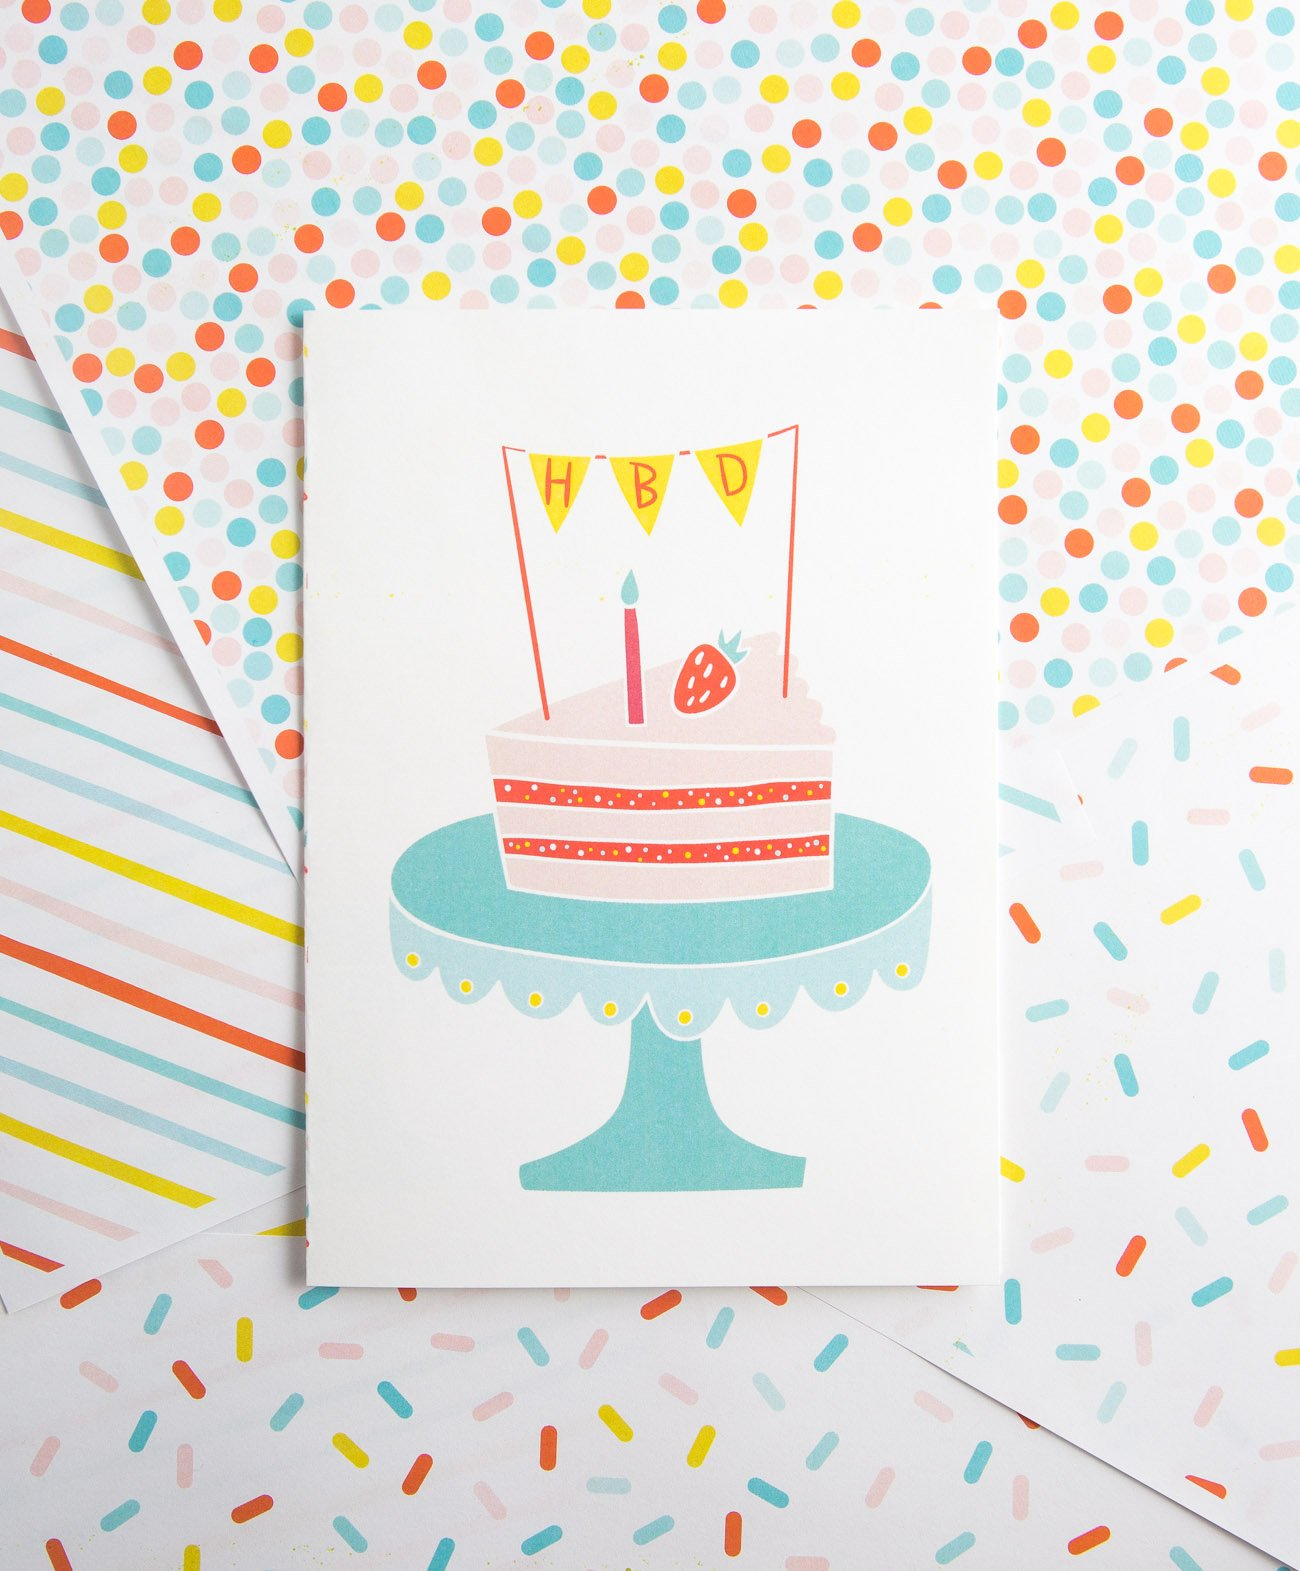 graphic about Free Printable Birthday Cards for Adults identify Absolutely free Printable Cake Birthday Card - Structure Try to eat Repeat